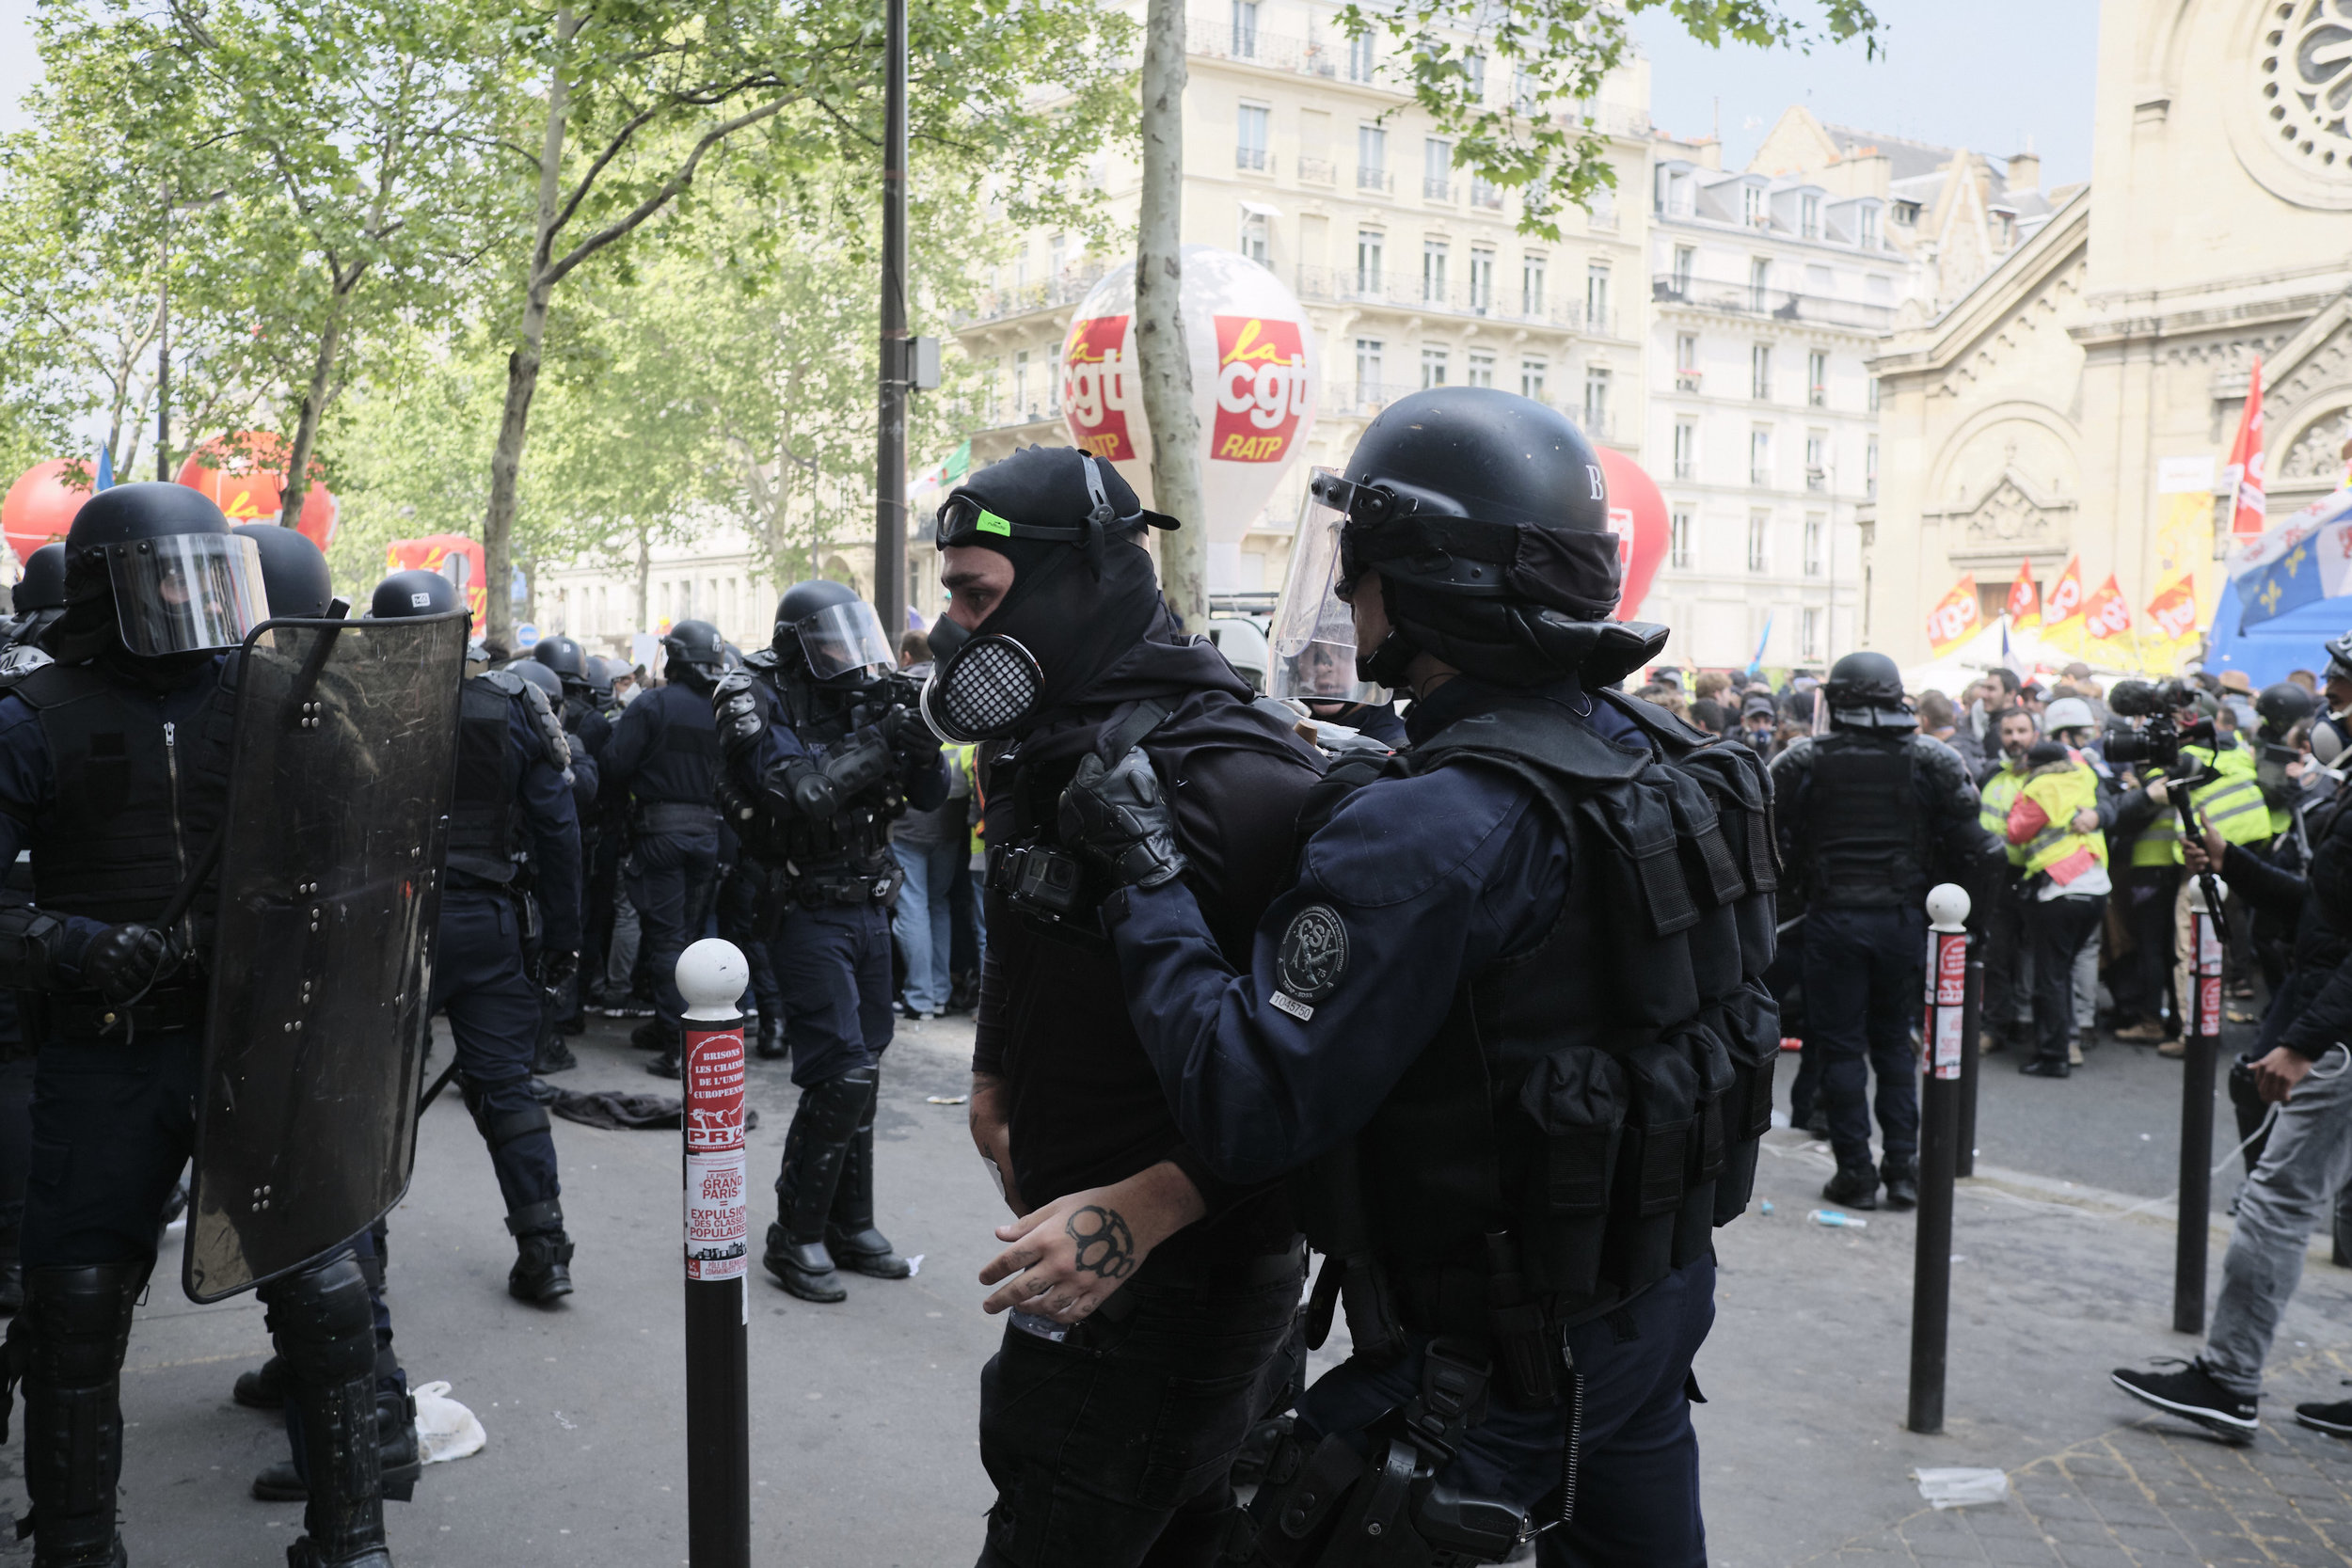 Anti-fascist protest participant being arrested by the riot police during the confrontation between the police and protesters at Boulevard du Montparnasse.